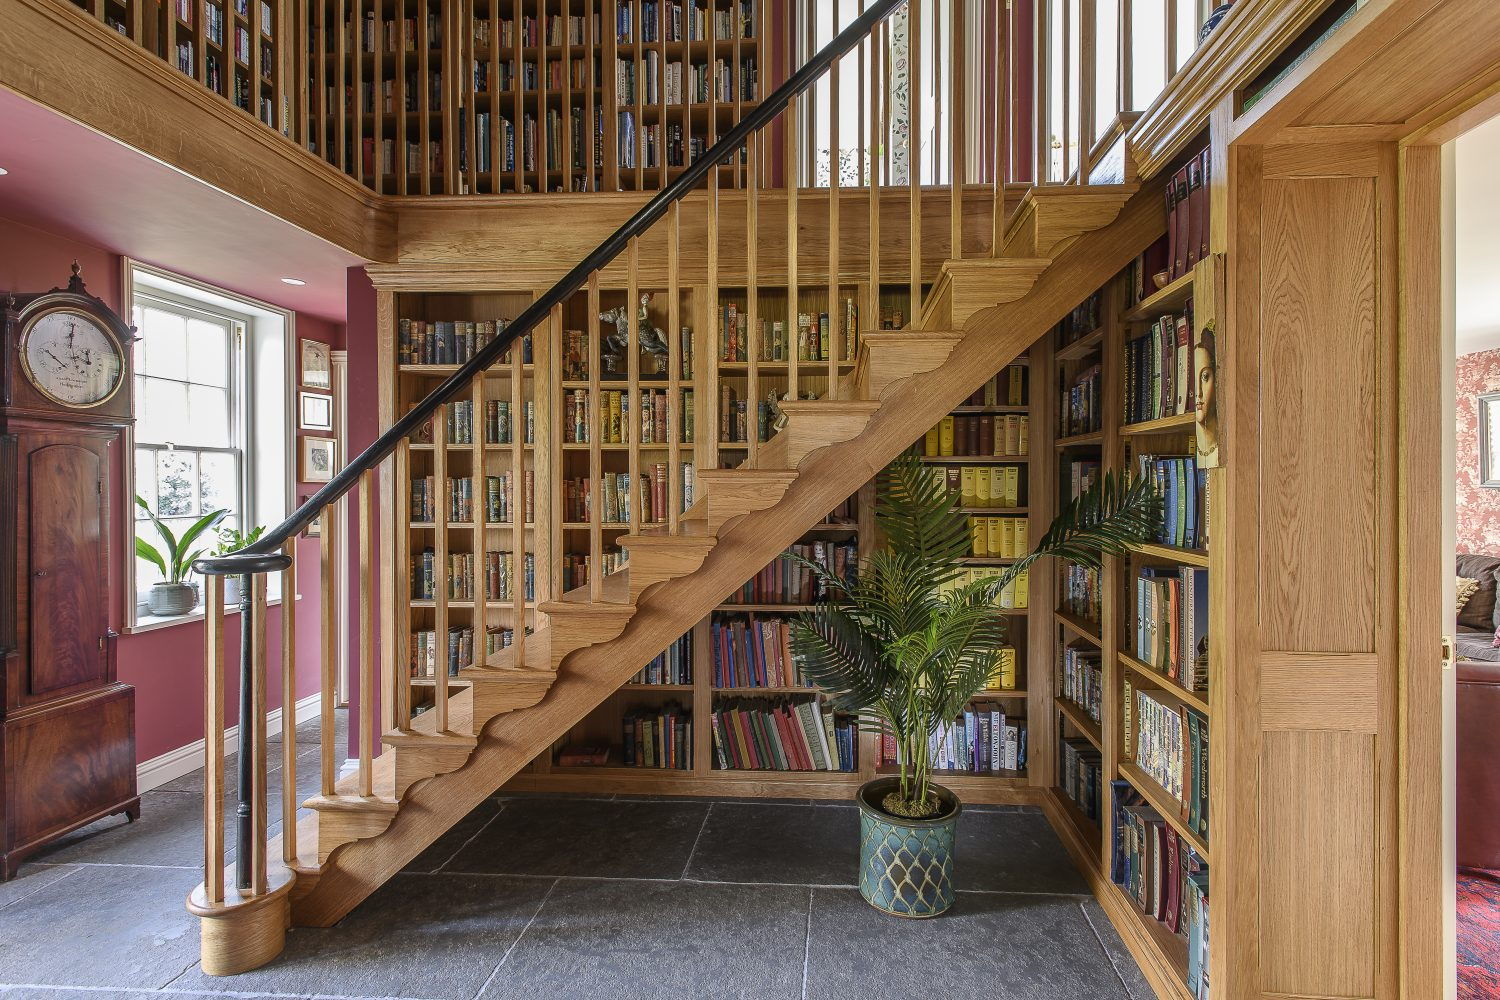 A double-height, oak-framed atrium is lined with fabulous books and objects